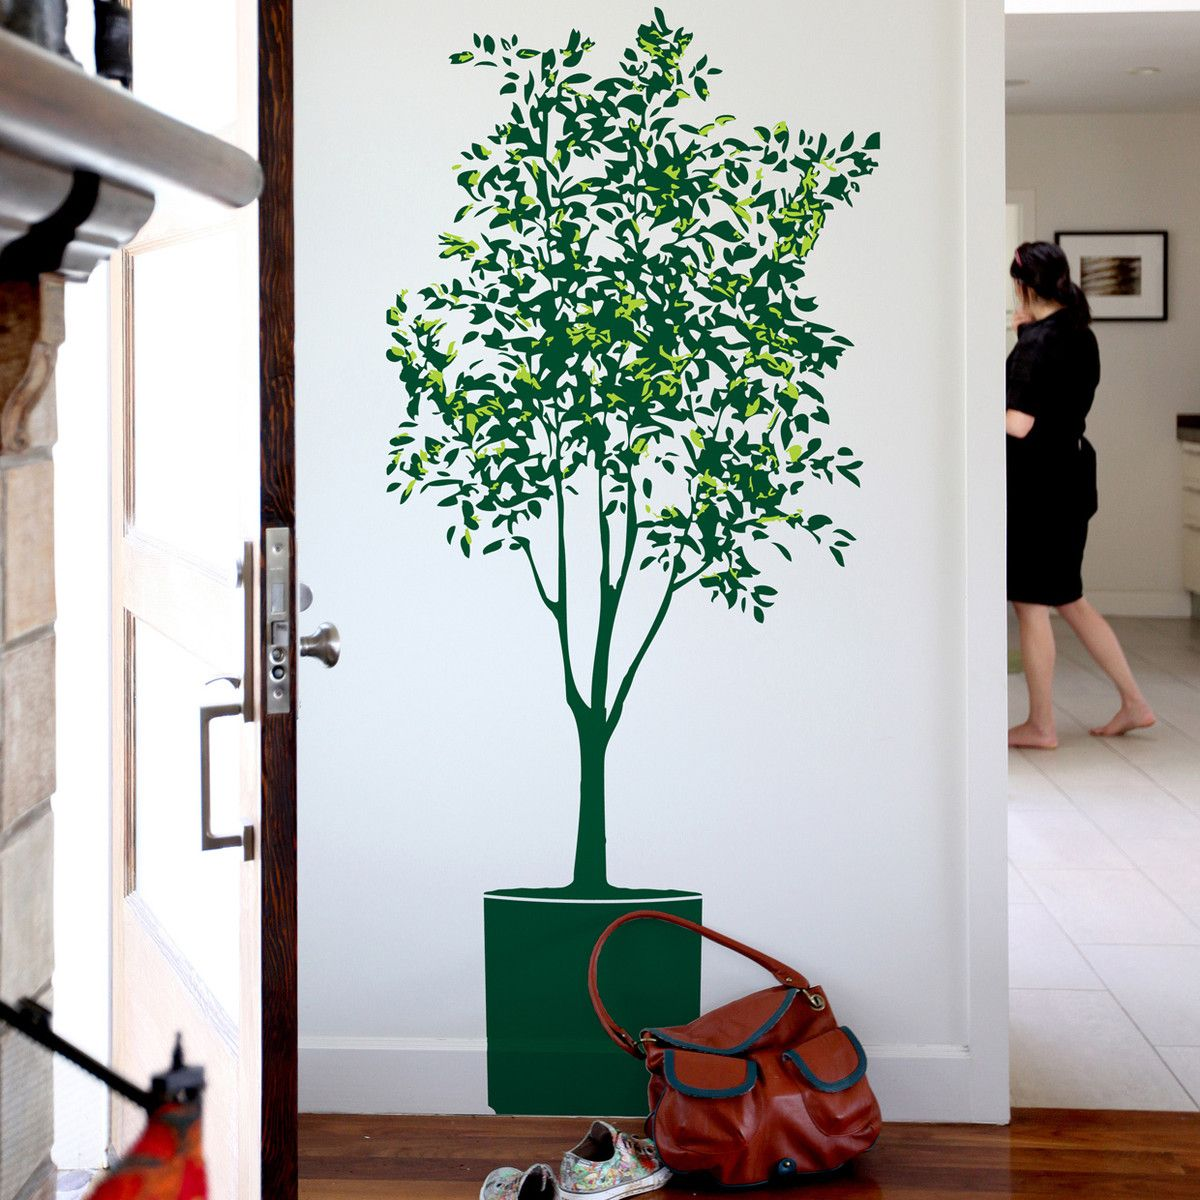 Olive Tree Wall Decal Set by Mina Javid for Blik Surface Graphics